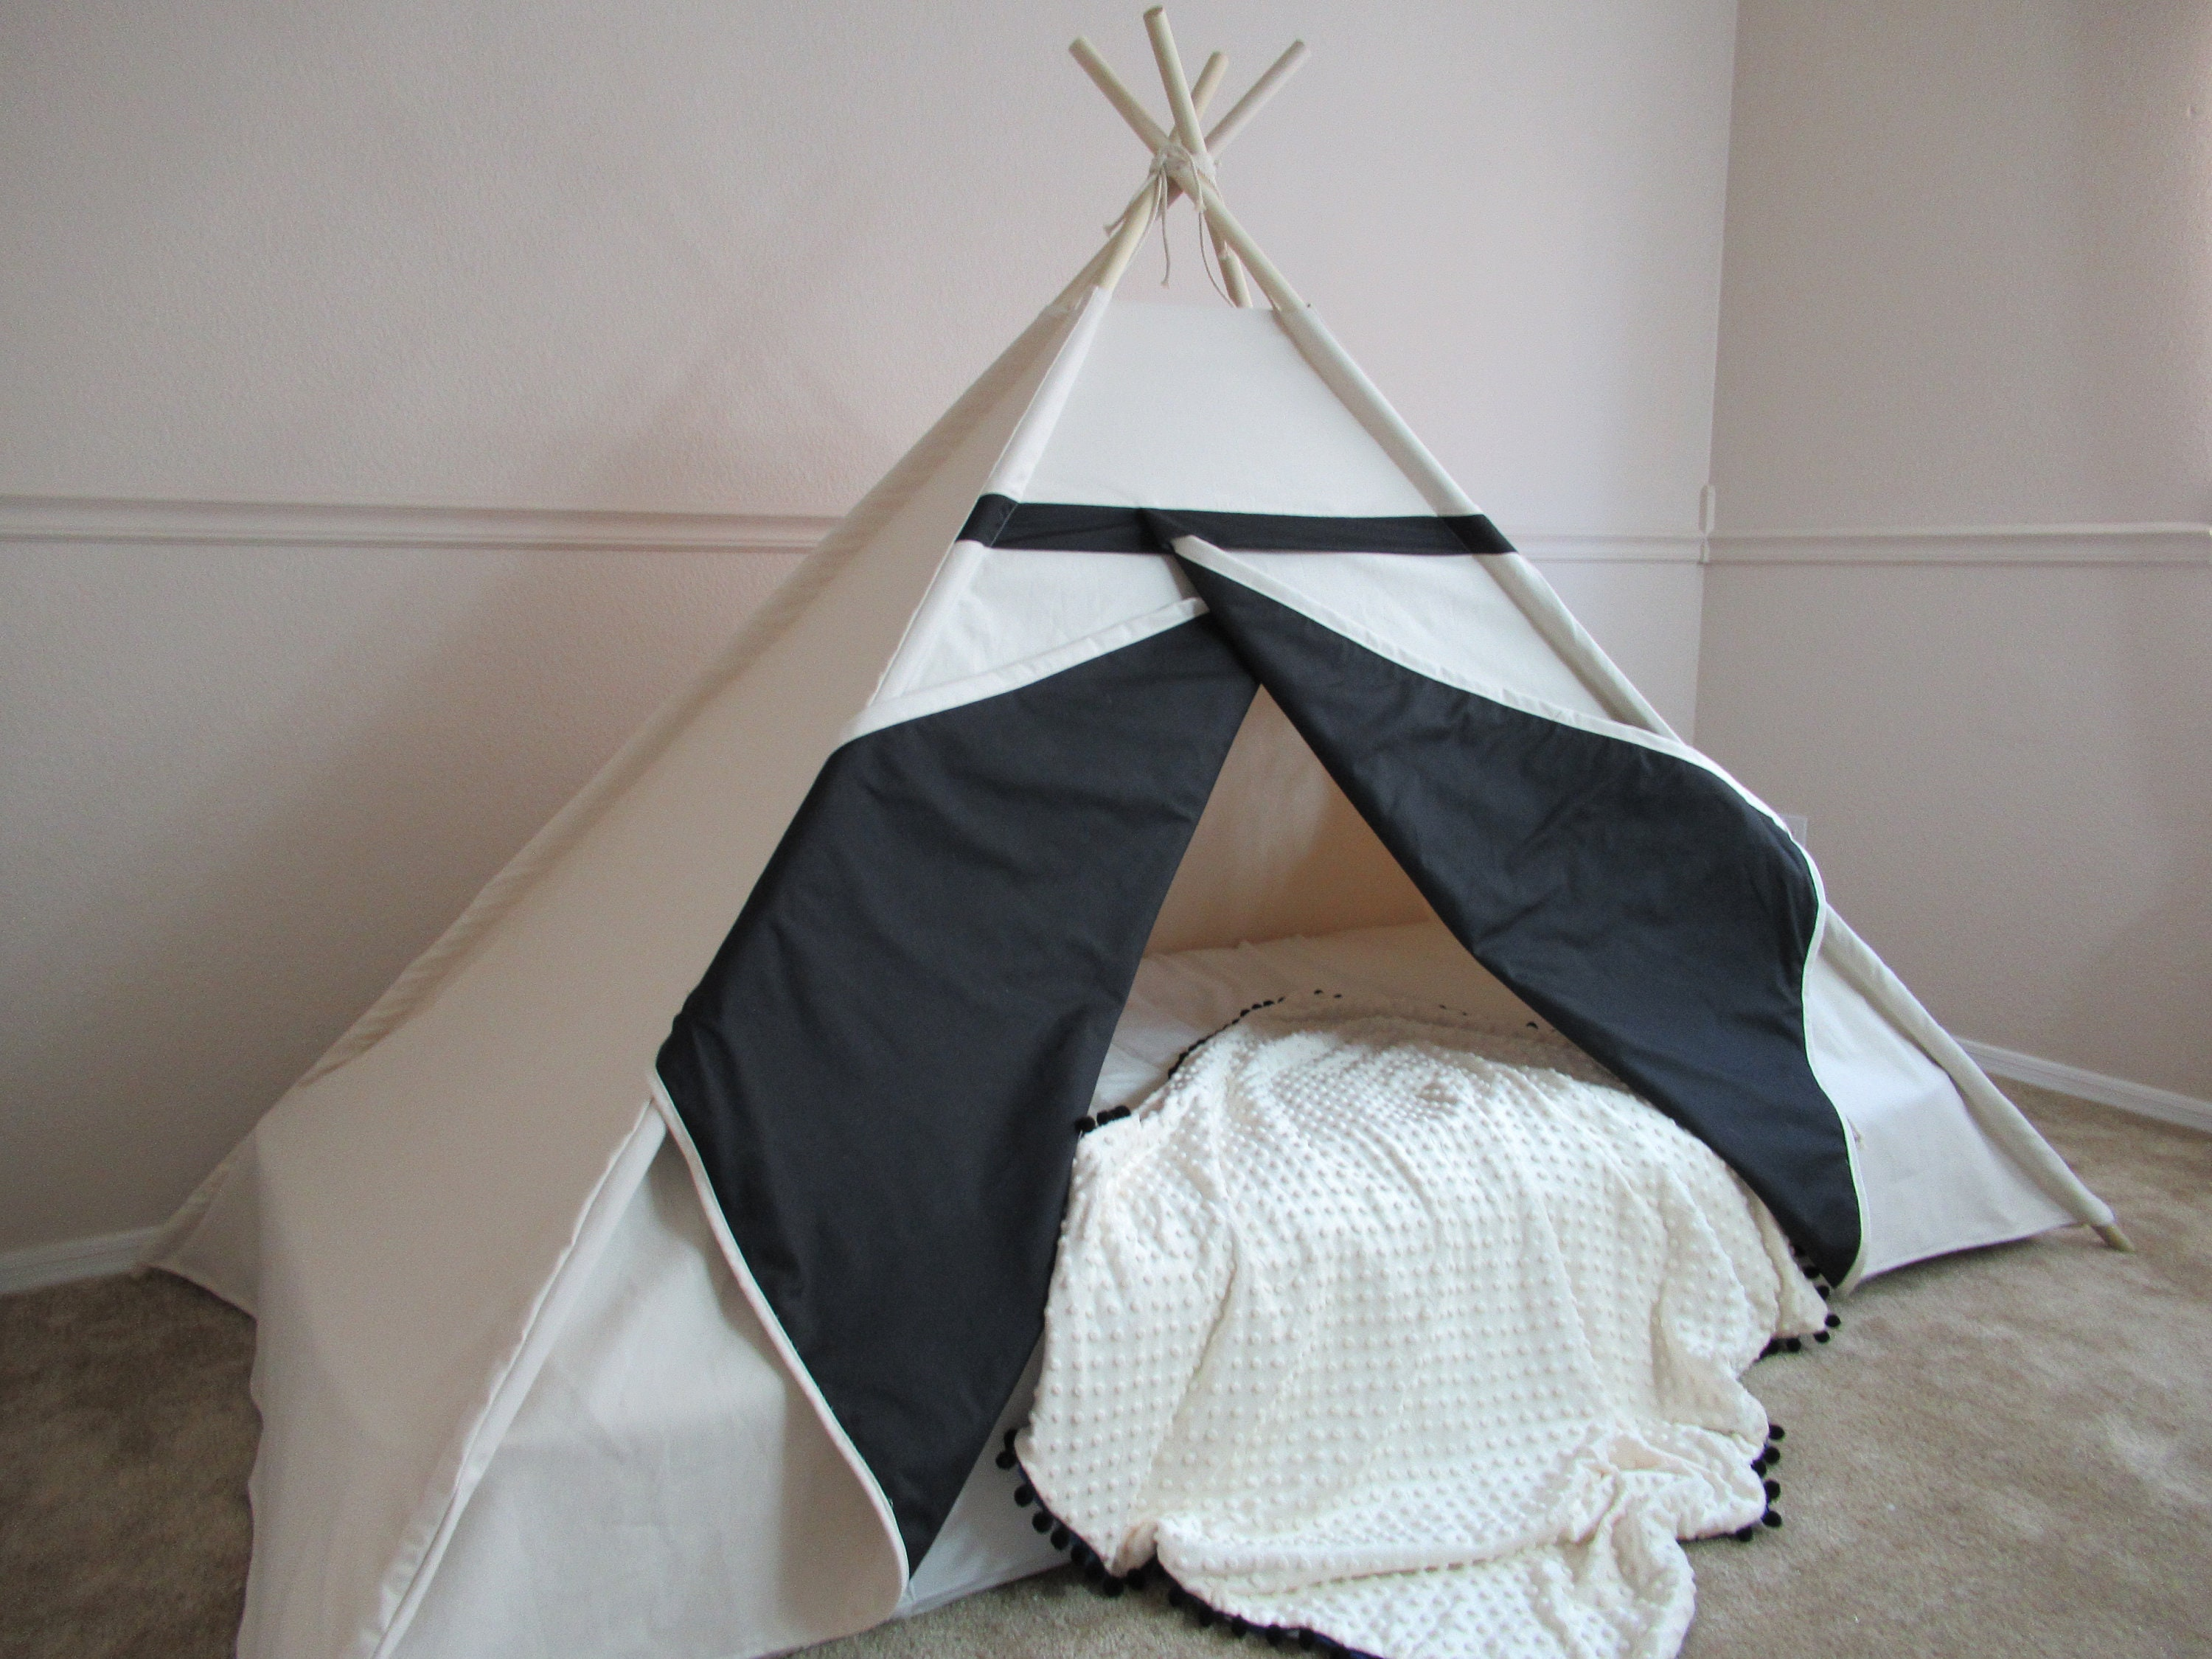 Two-tone bed canopy teepee with flap window tent bed canopy teepee canopy for bed kids Teepeewith canvas and Overlapping front doors & Two-tone bed canopy teepee with flap window tent bed canopy teepee ...